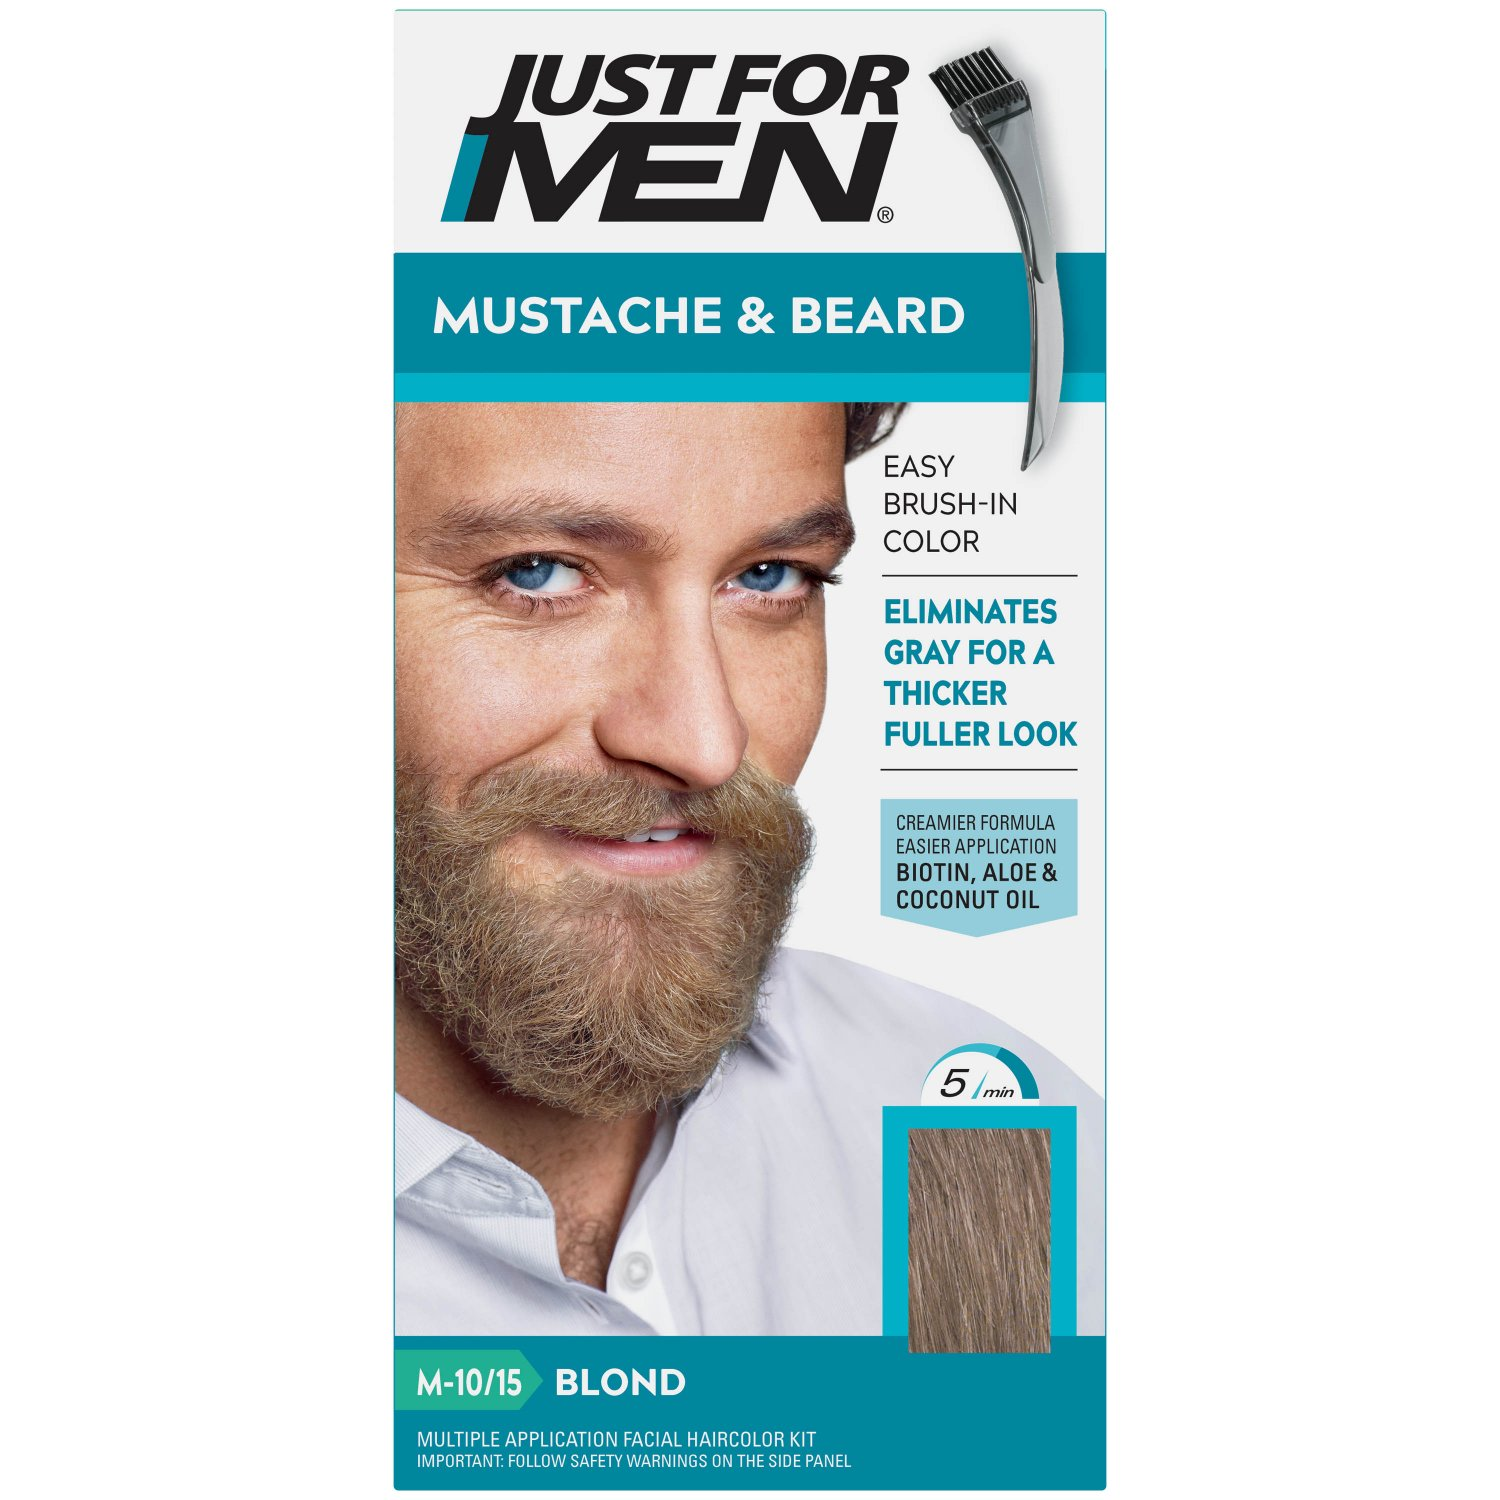 Just For Men Mustache & Beard Coloring for Gray Hair Brush Included Blond M-10/15